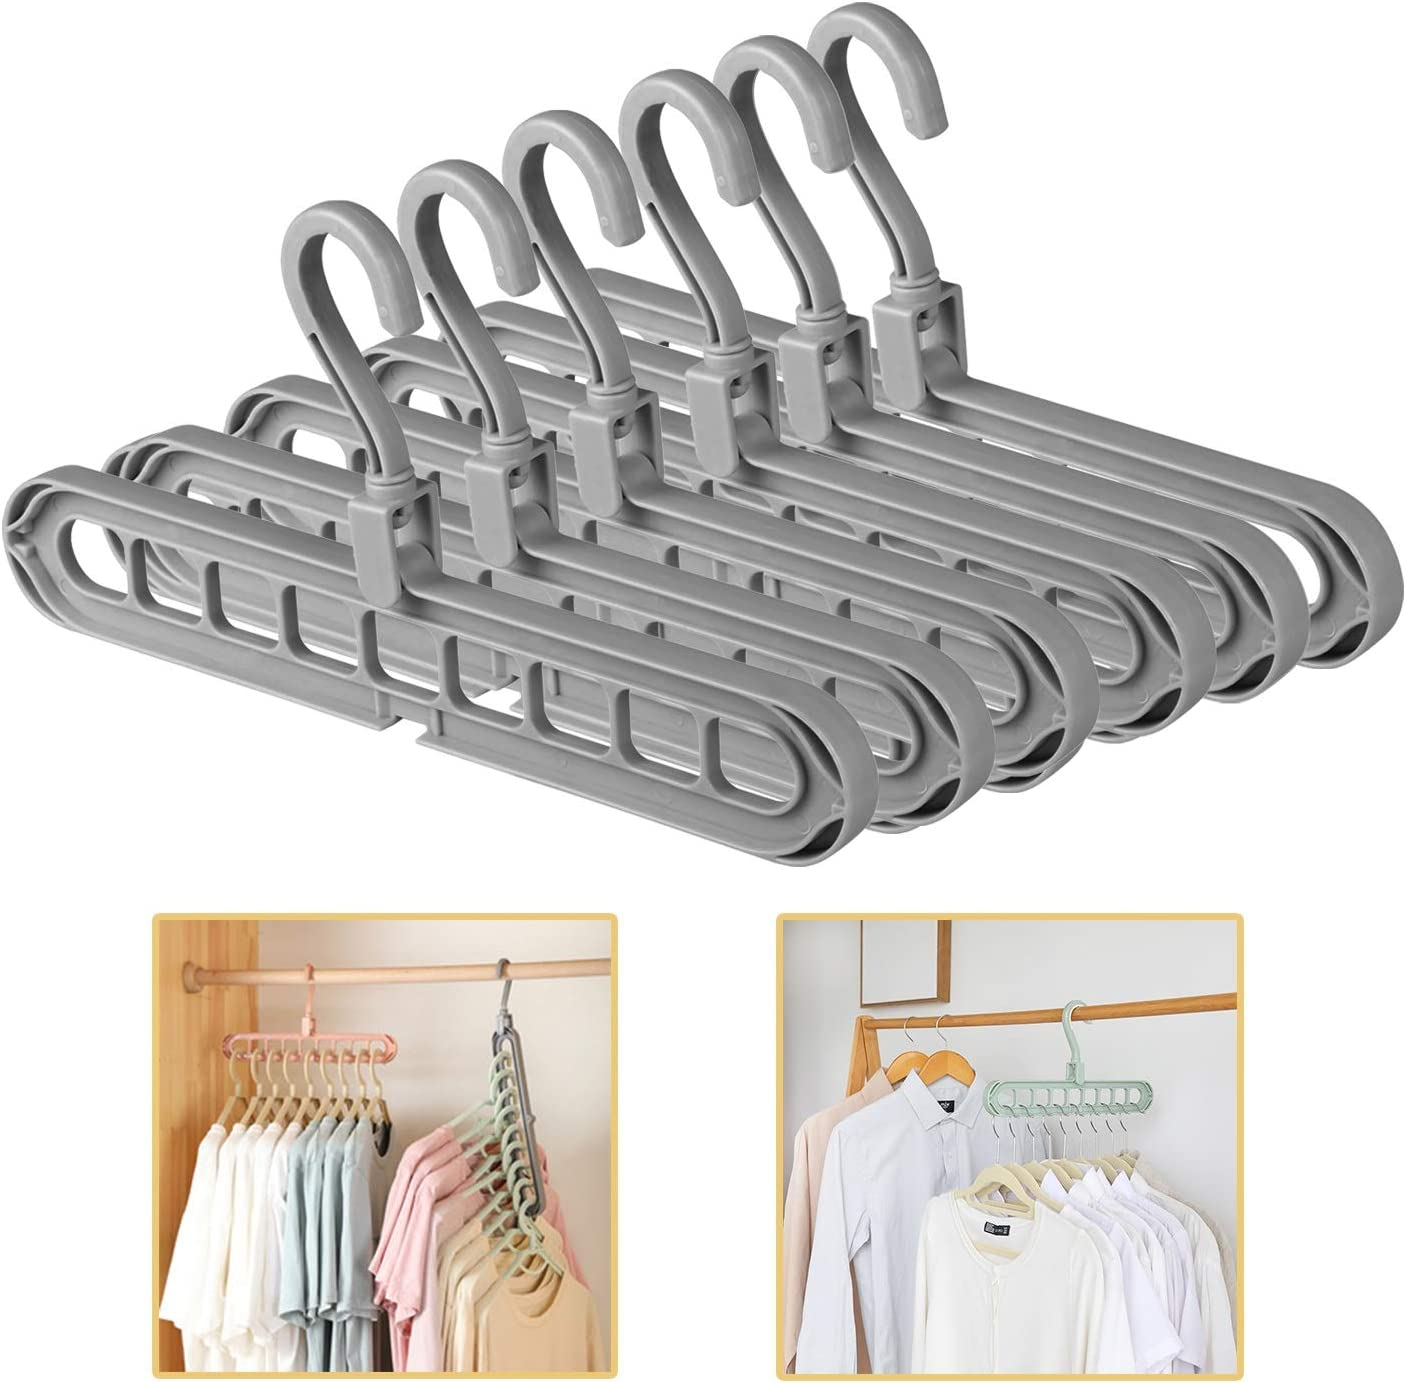 helegeSONG 2PCS Rainbow Clip and Drip Hanger PortableTravel Hanger Multifunctional Drying Rack with 8 Clips Clothes Drying Racks Folding Clothing Hanger 2 Pack Rainbow